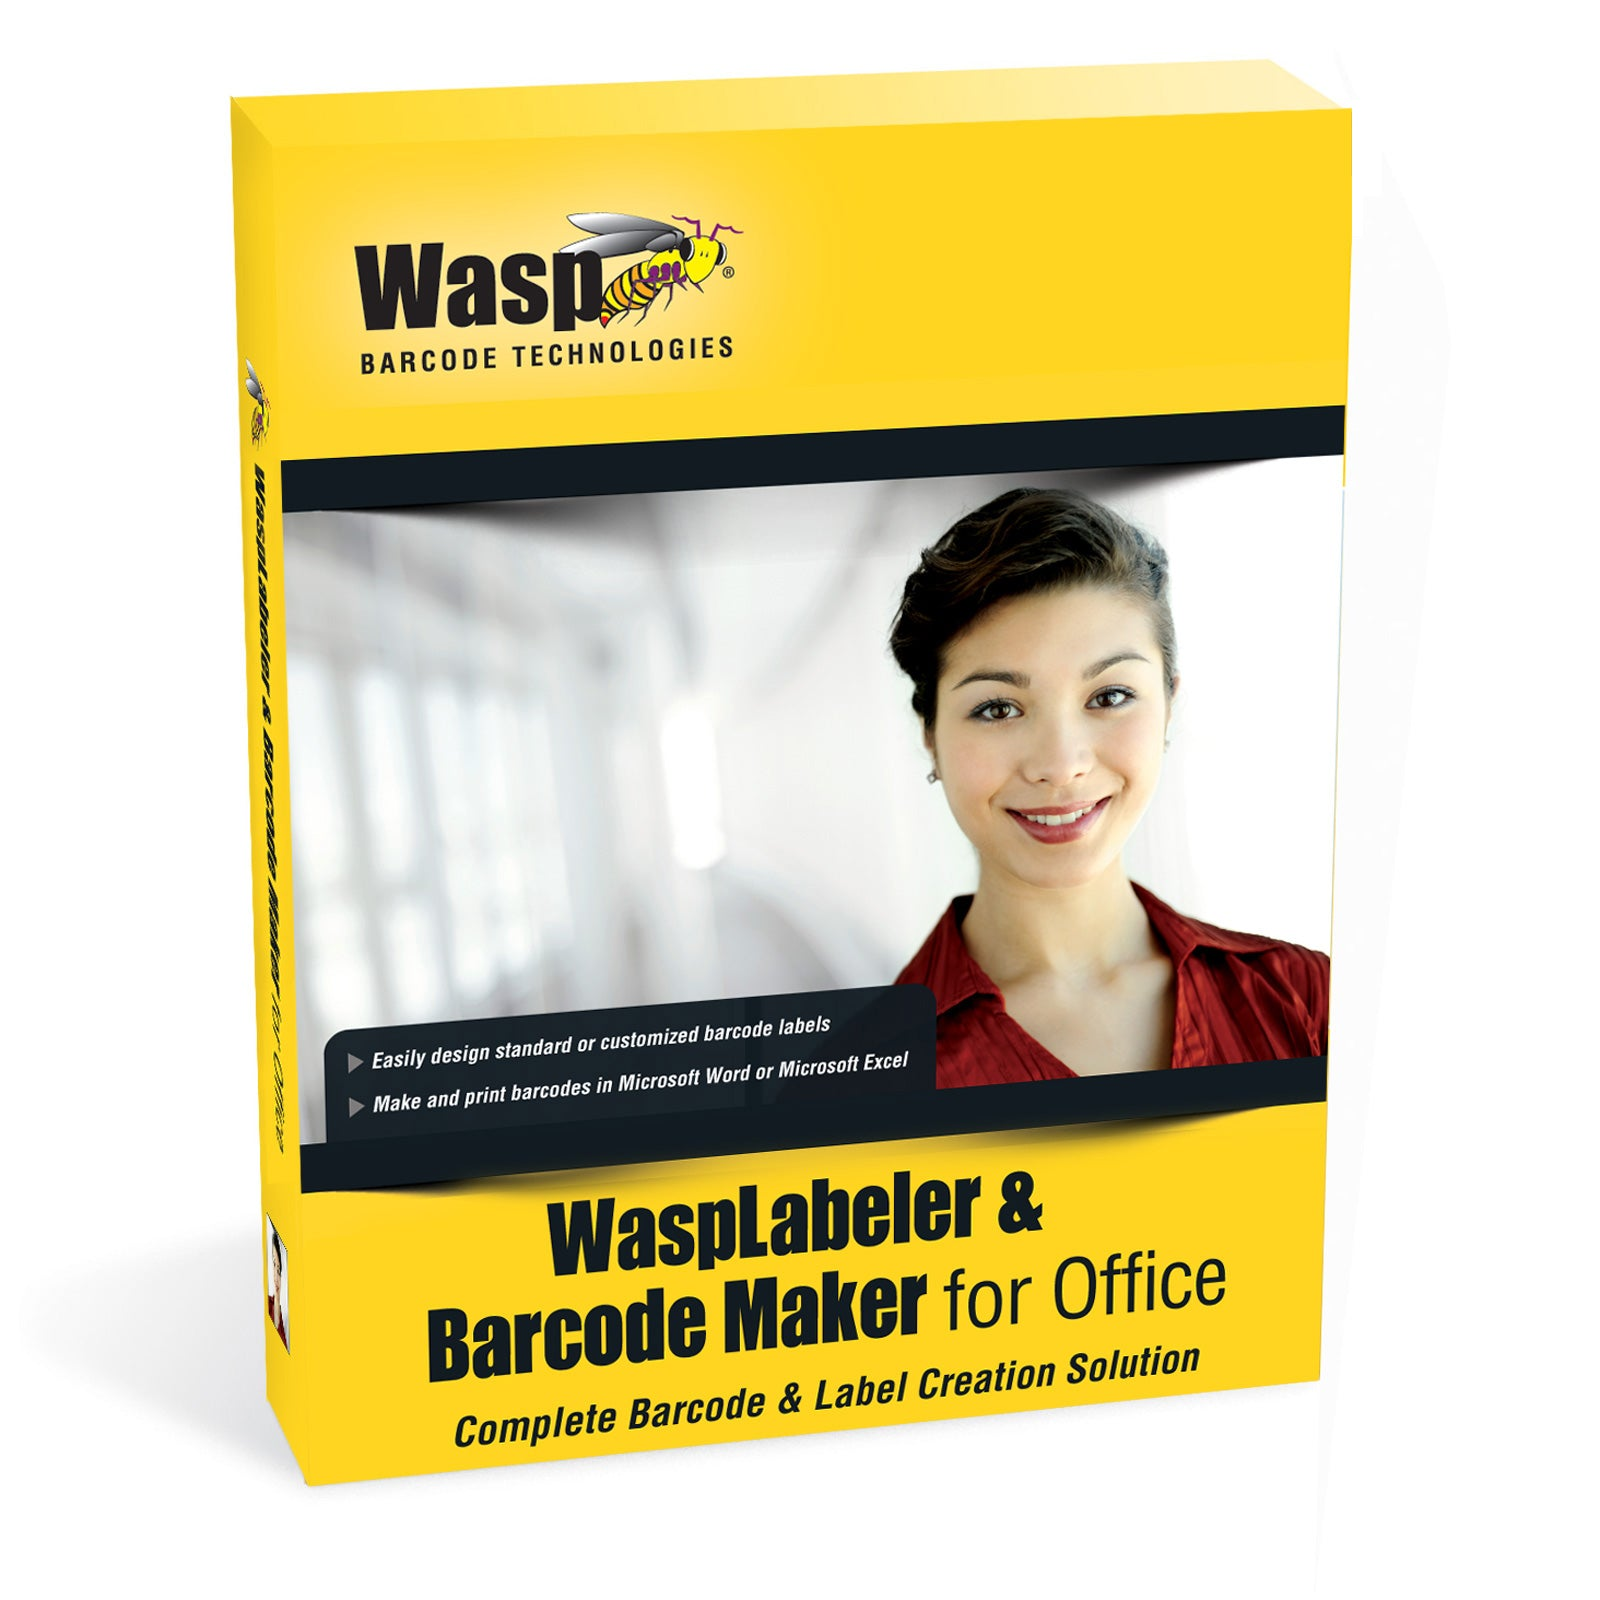 WaspLabeler & Barcode Maker For Office (5 User Licenses) - 633808105365